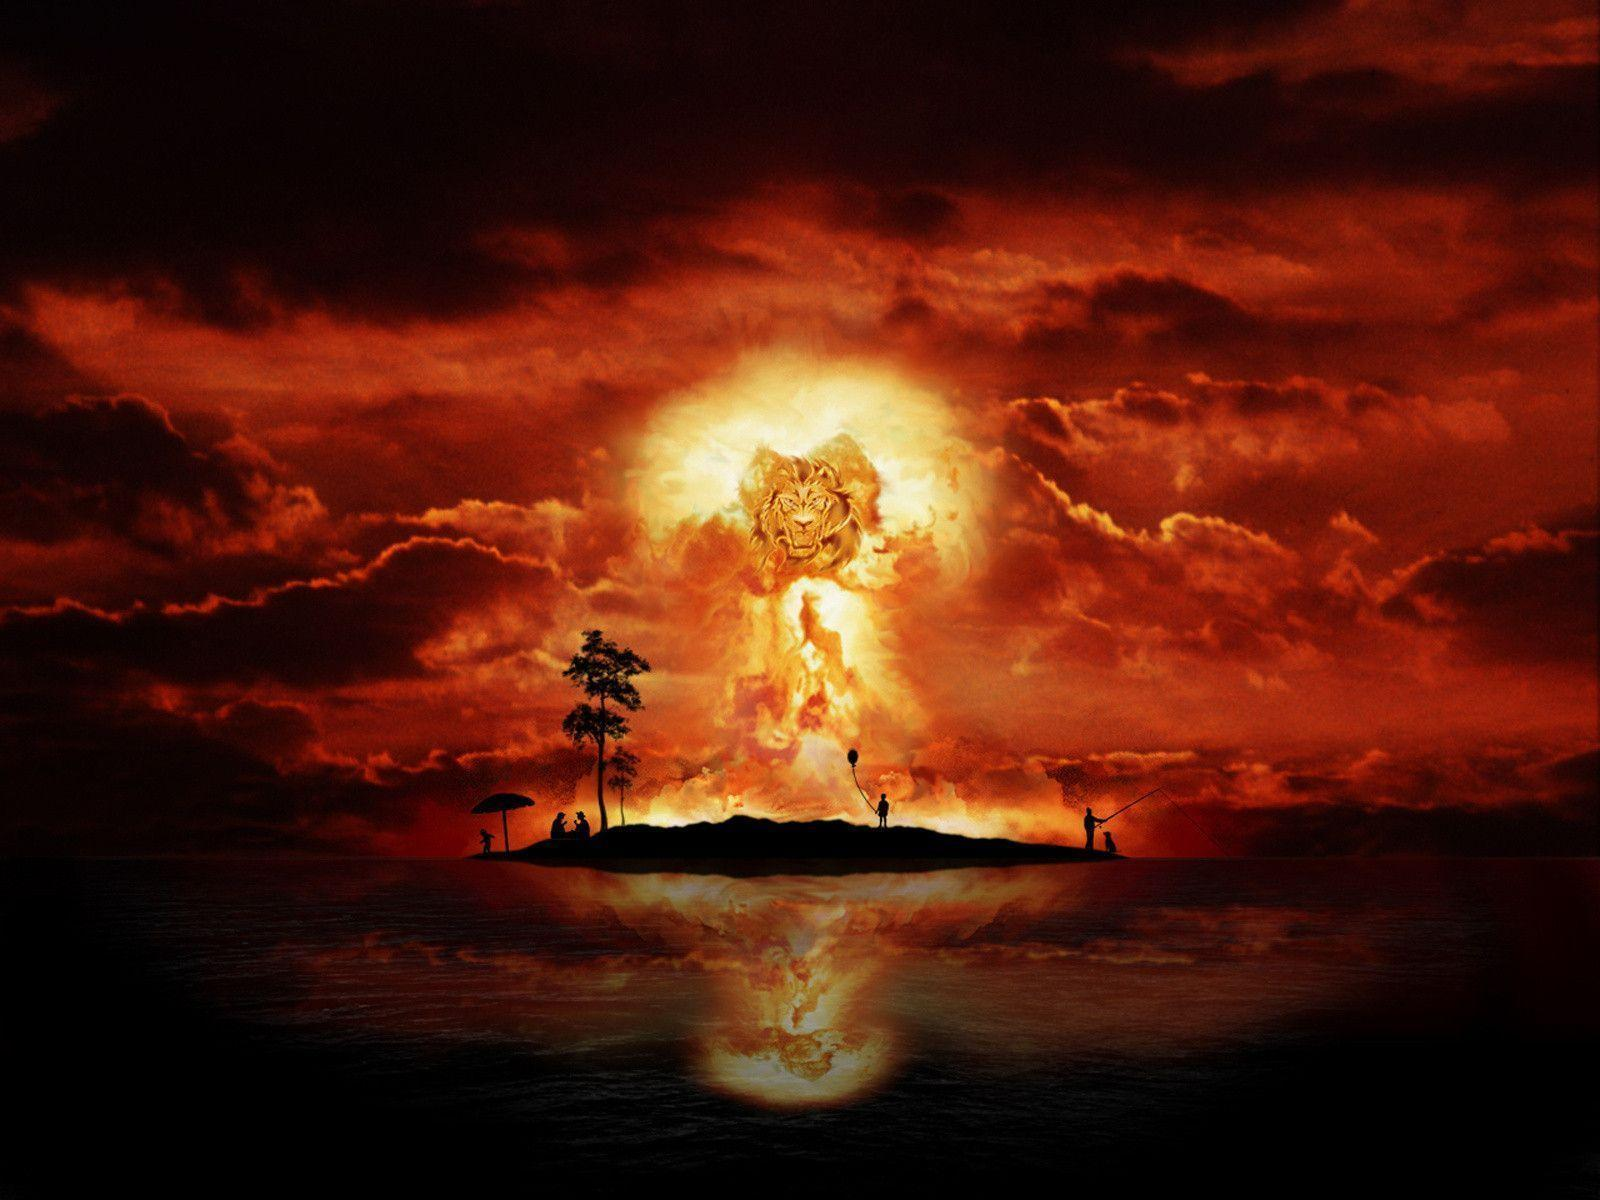 hd wallpapers atomic explosion - photo #42